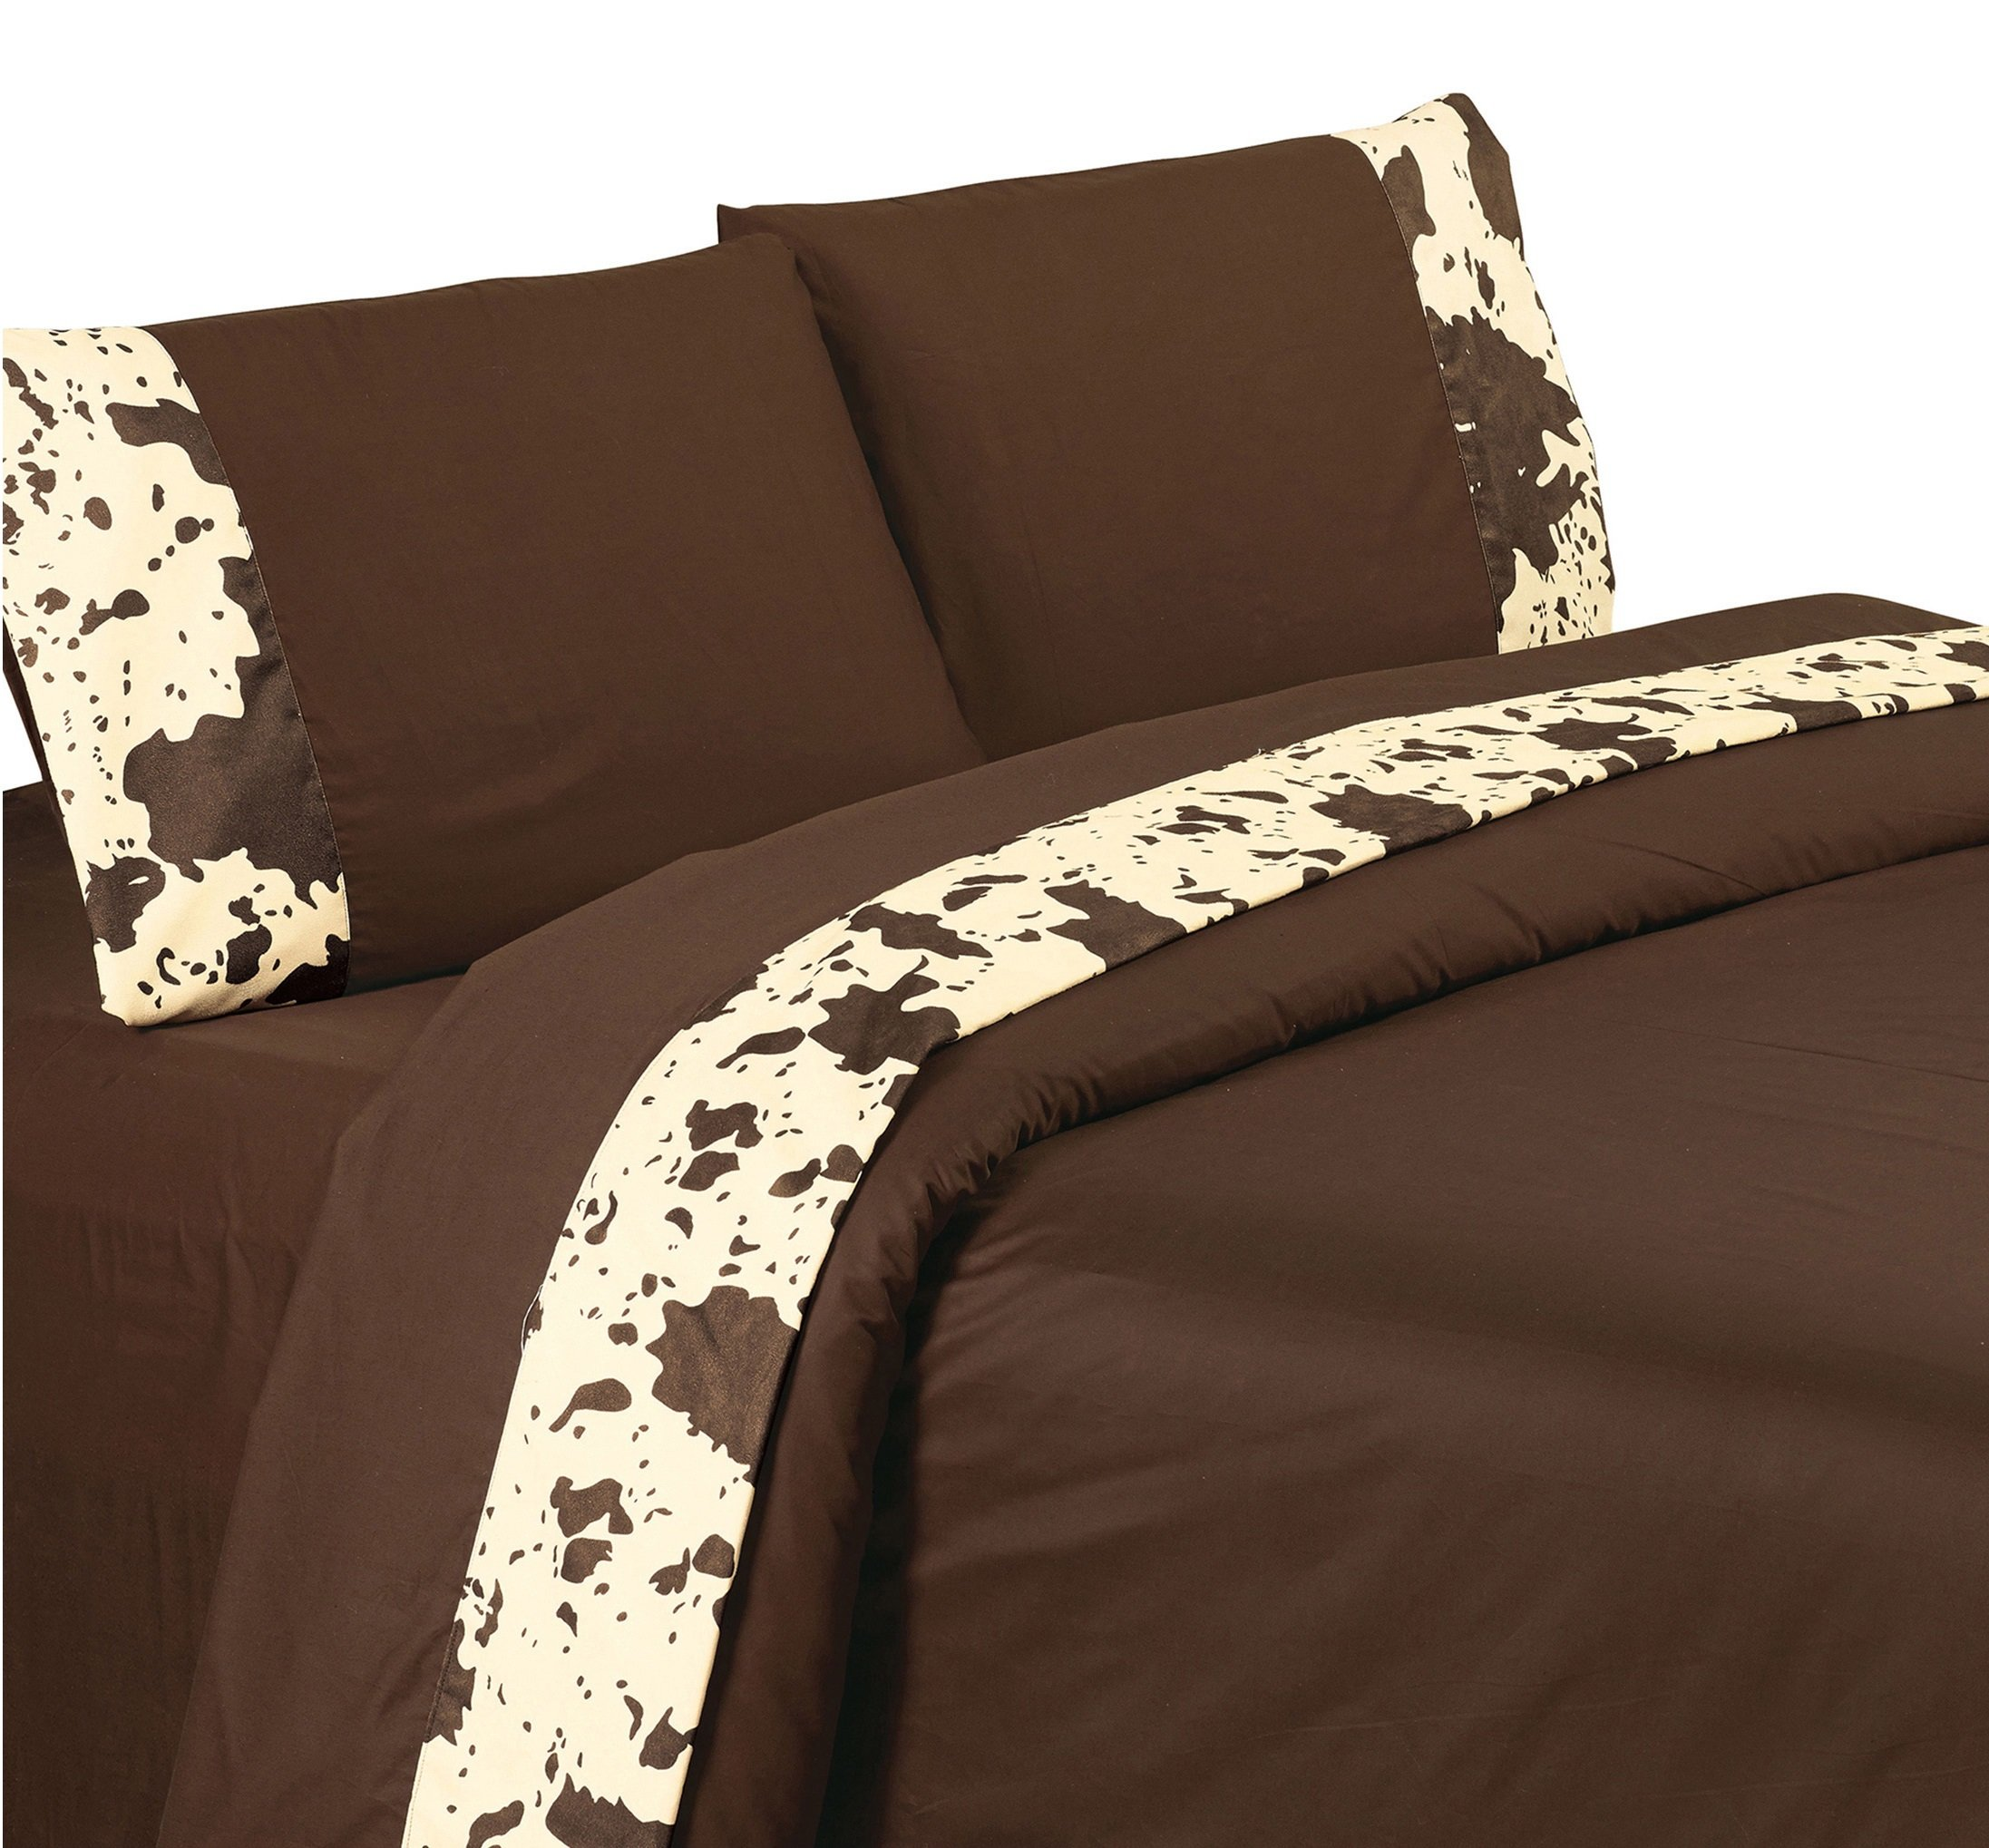 4 Piece Exotic Western Cow Prints Patterned Sheet Set Queen Size, Featuring Printed Abstract Rustic Animal Cows Bedding, Bold Vintage Earthy Design, Dark Color West County Style Bedroom, Brown, Cream